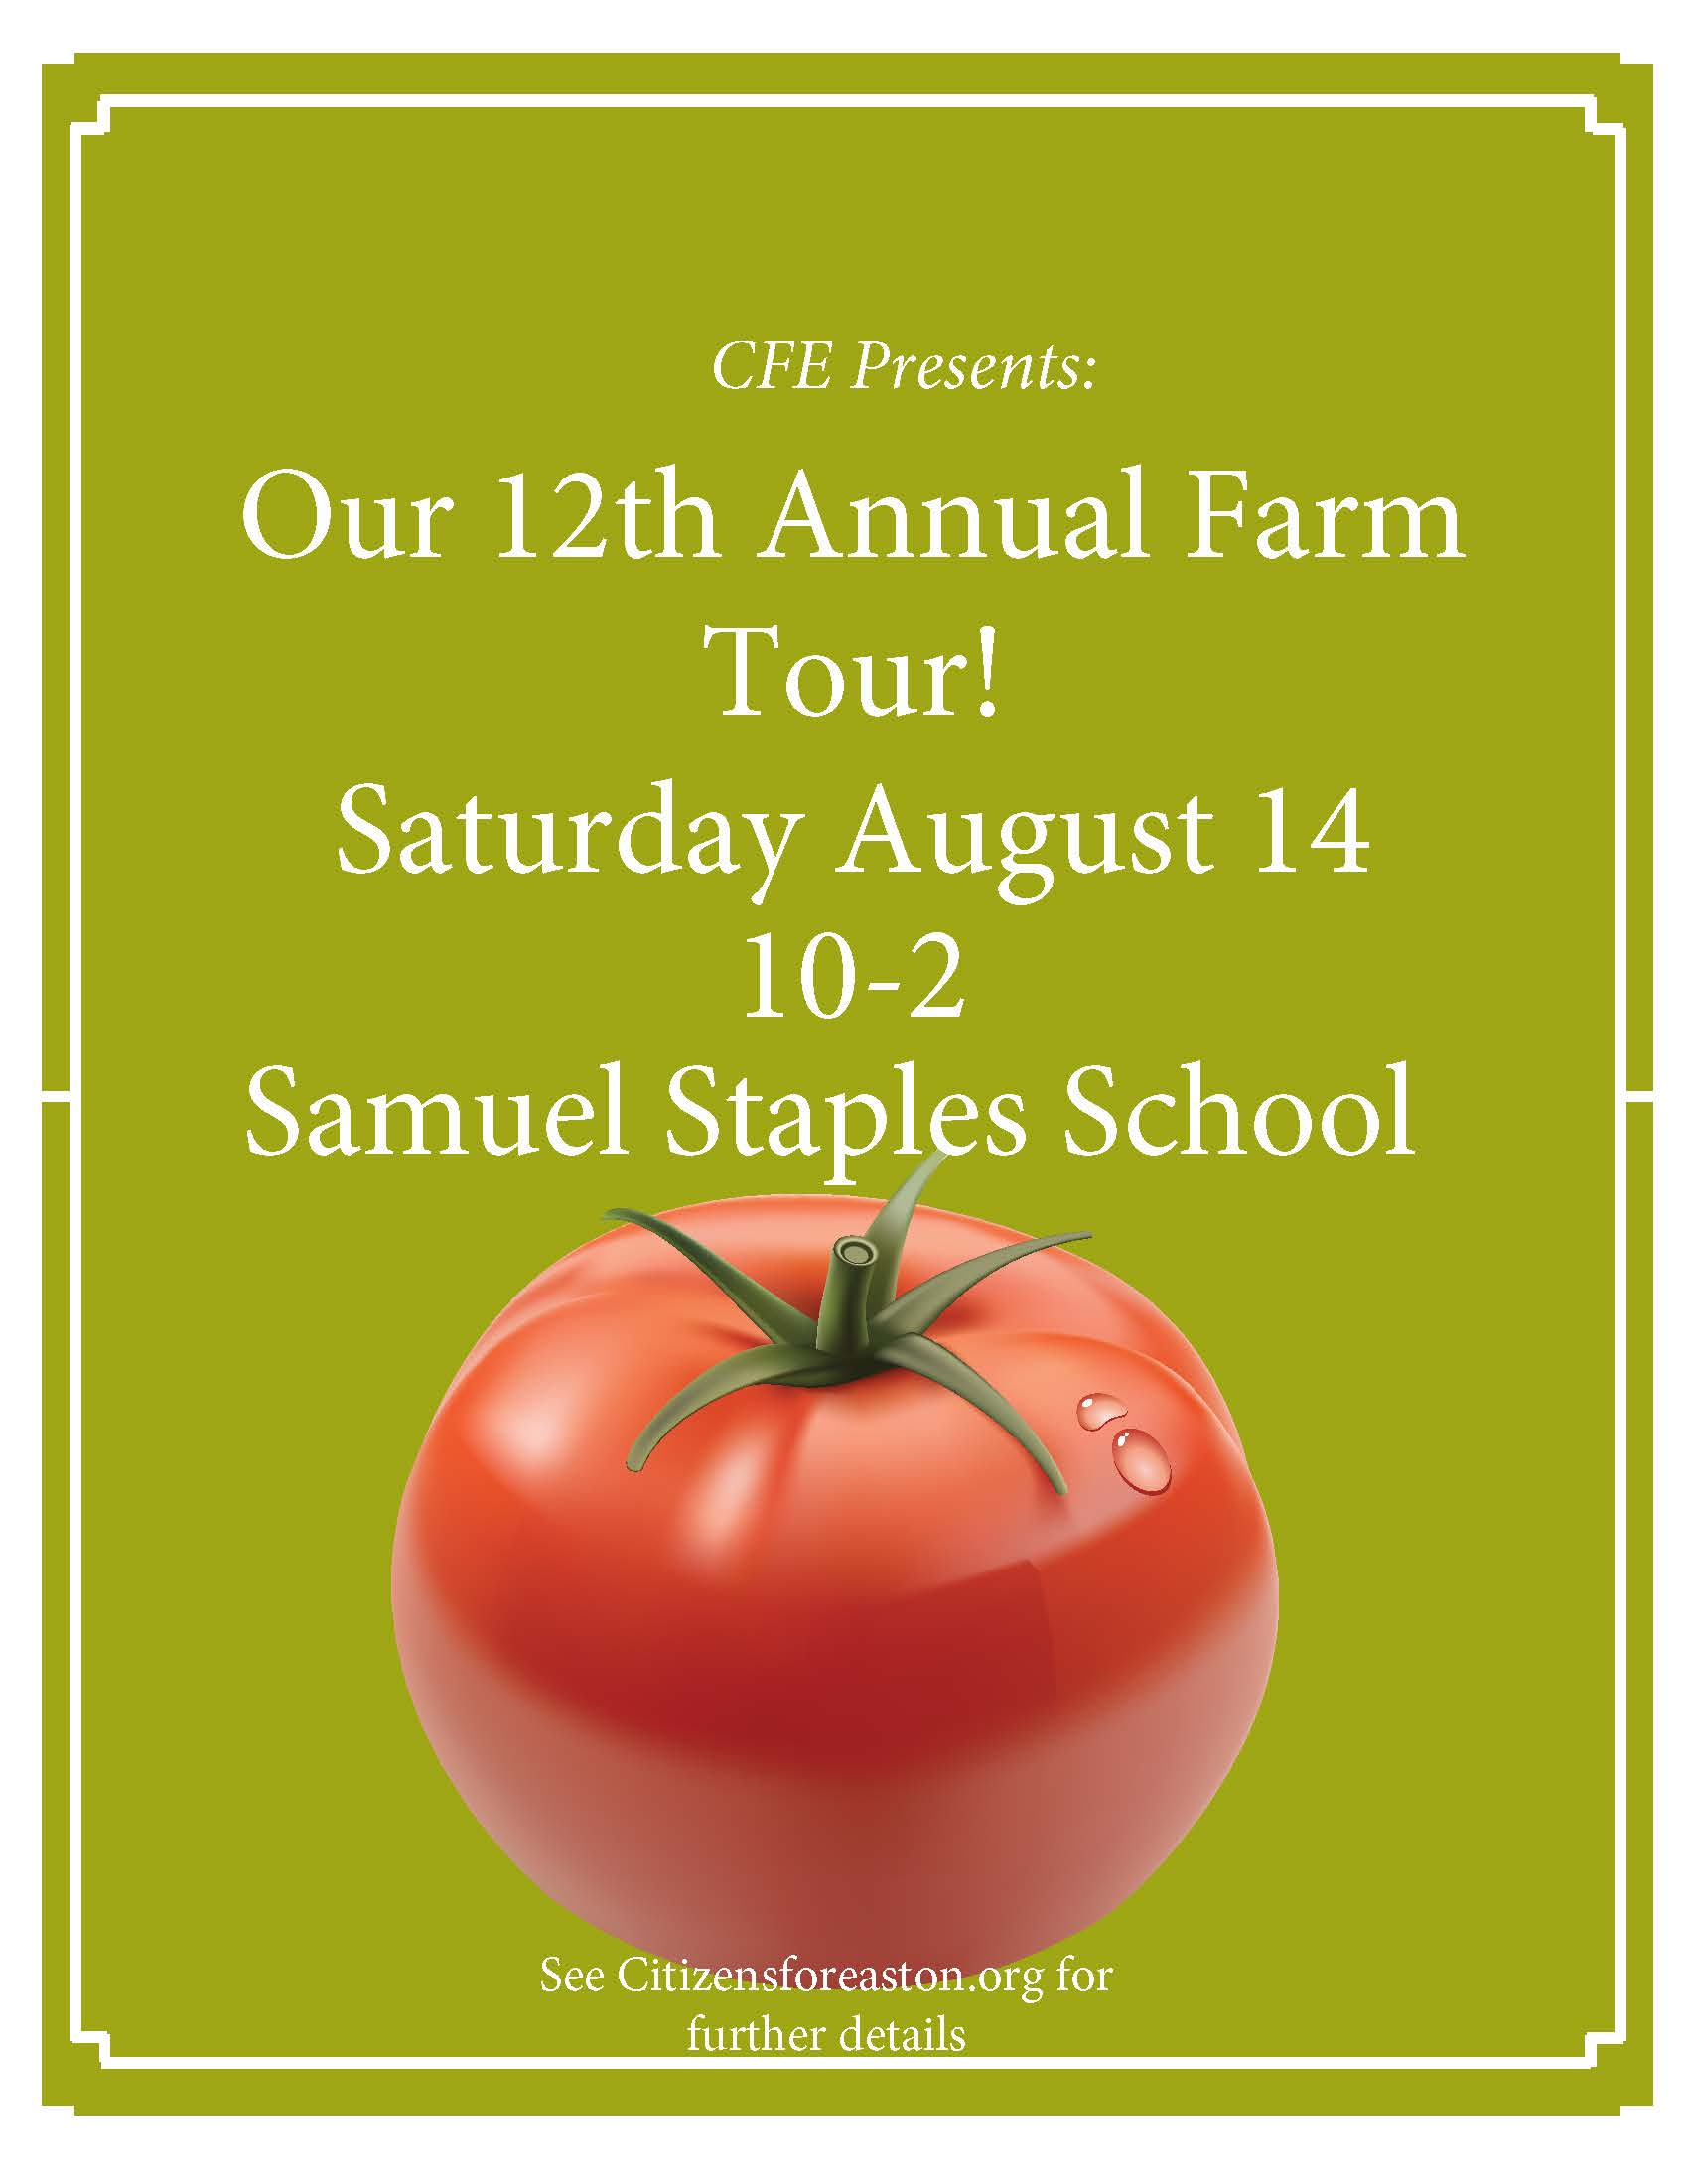 12th annual farm tour lawn sign with date